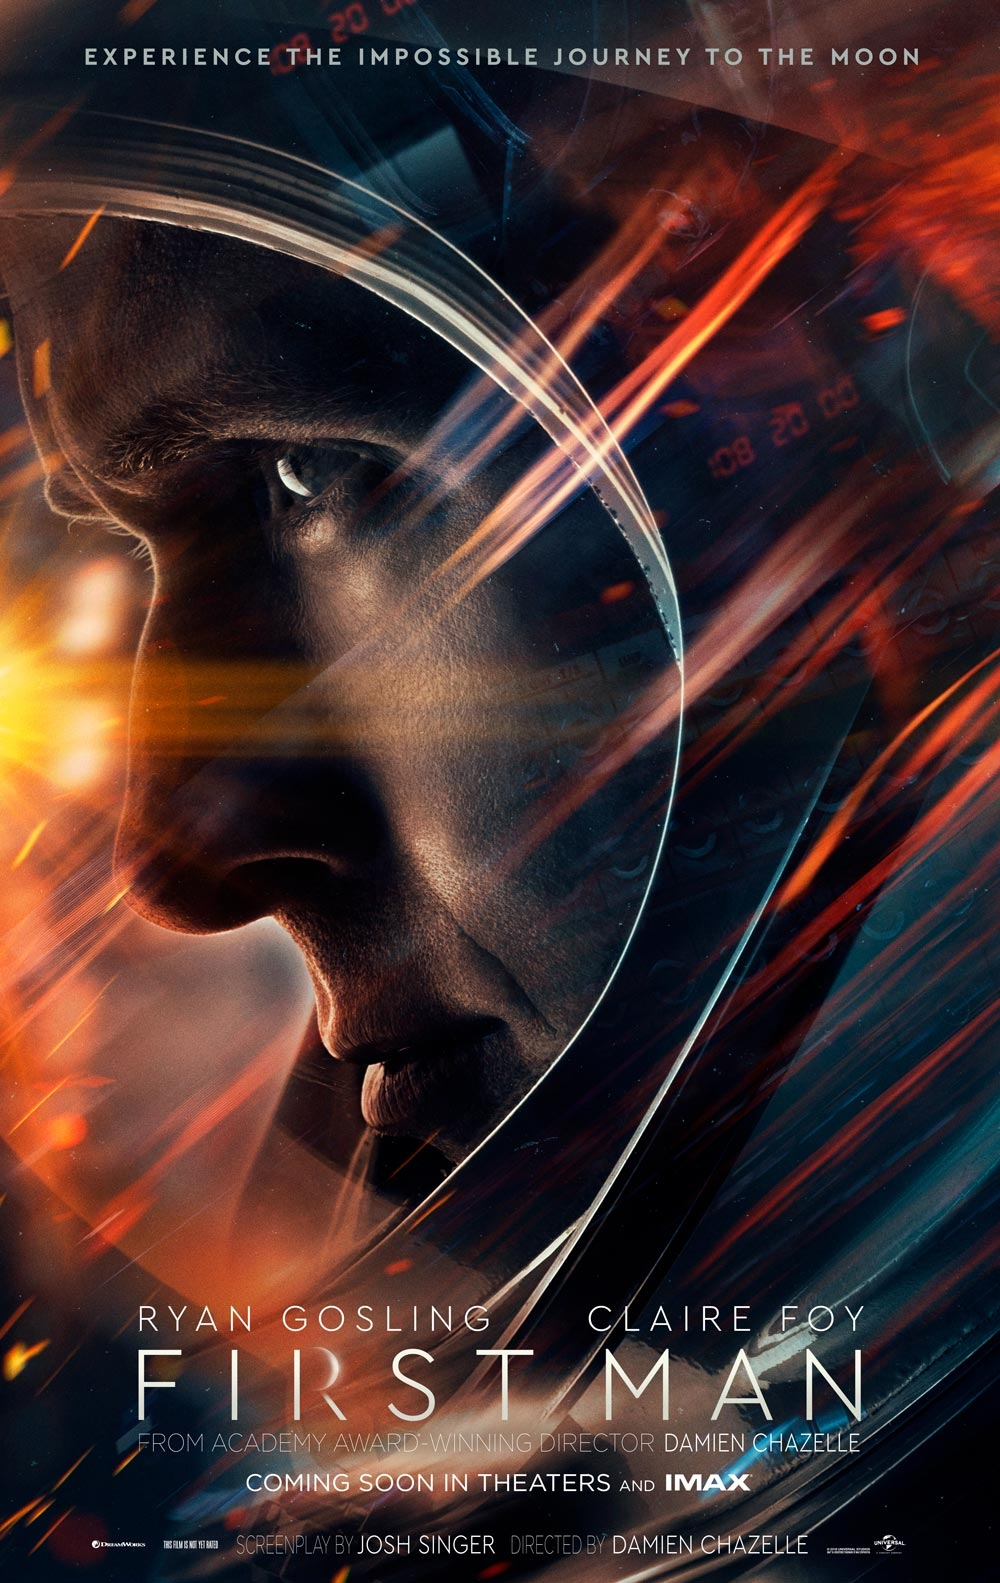 First Man offical poster